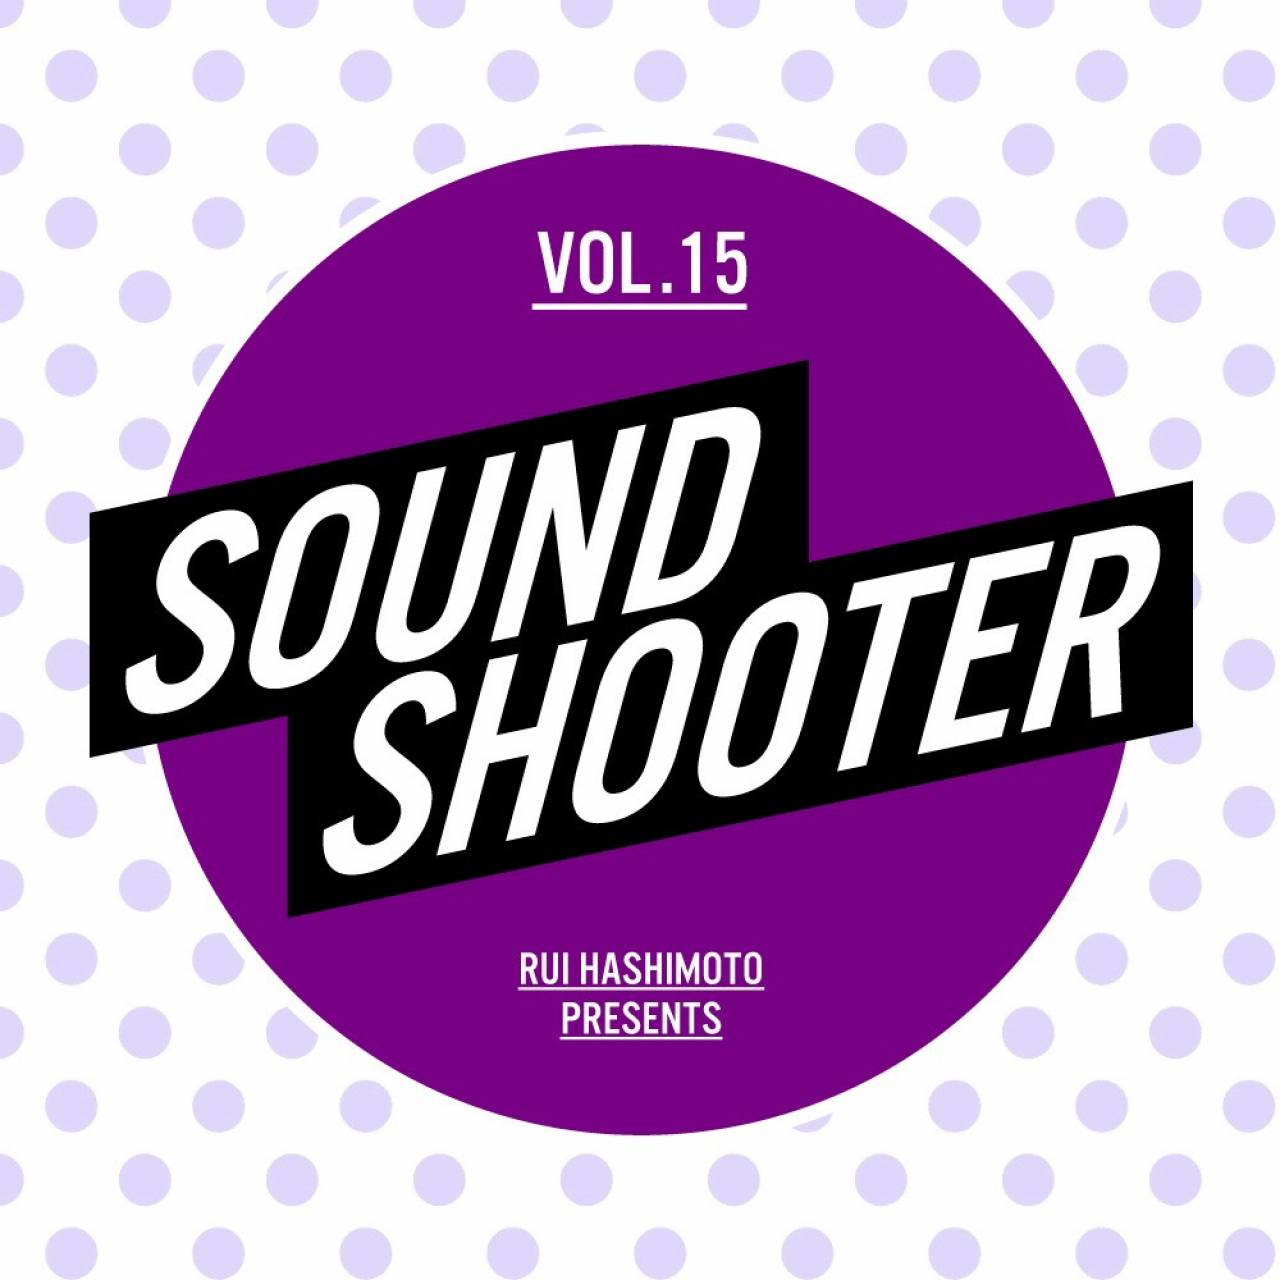 【中止】SOUND SHOOTER Vol.15